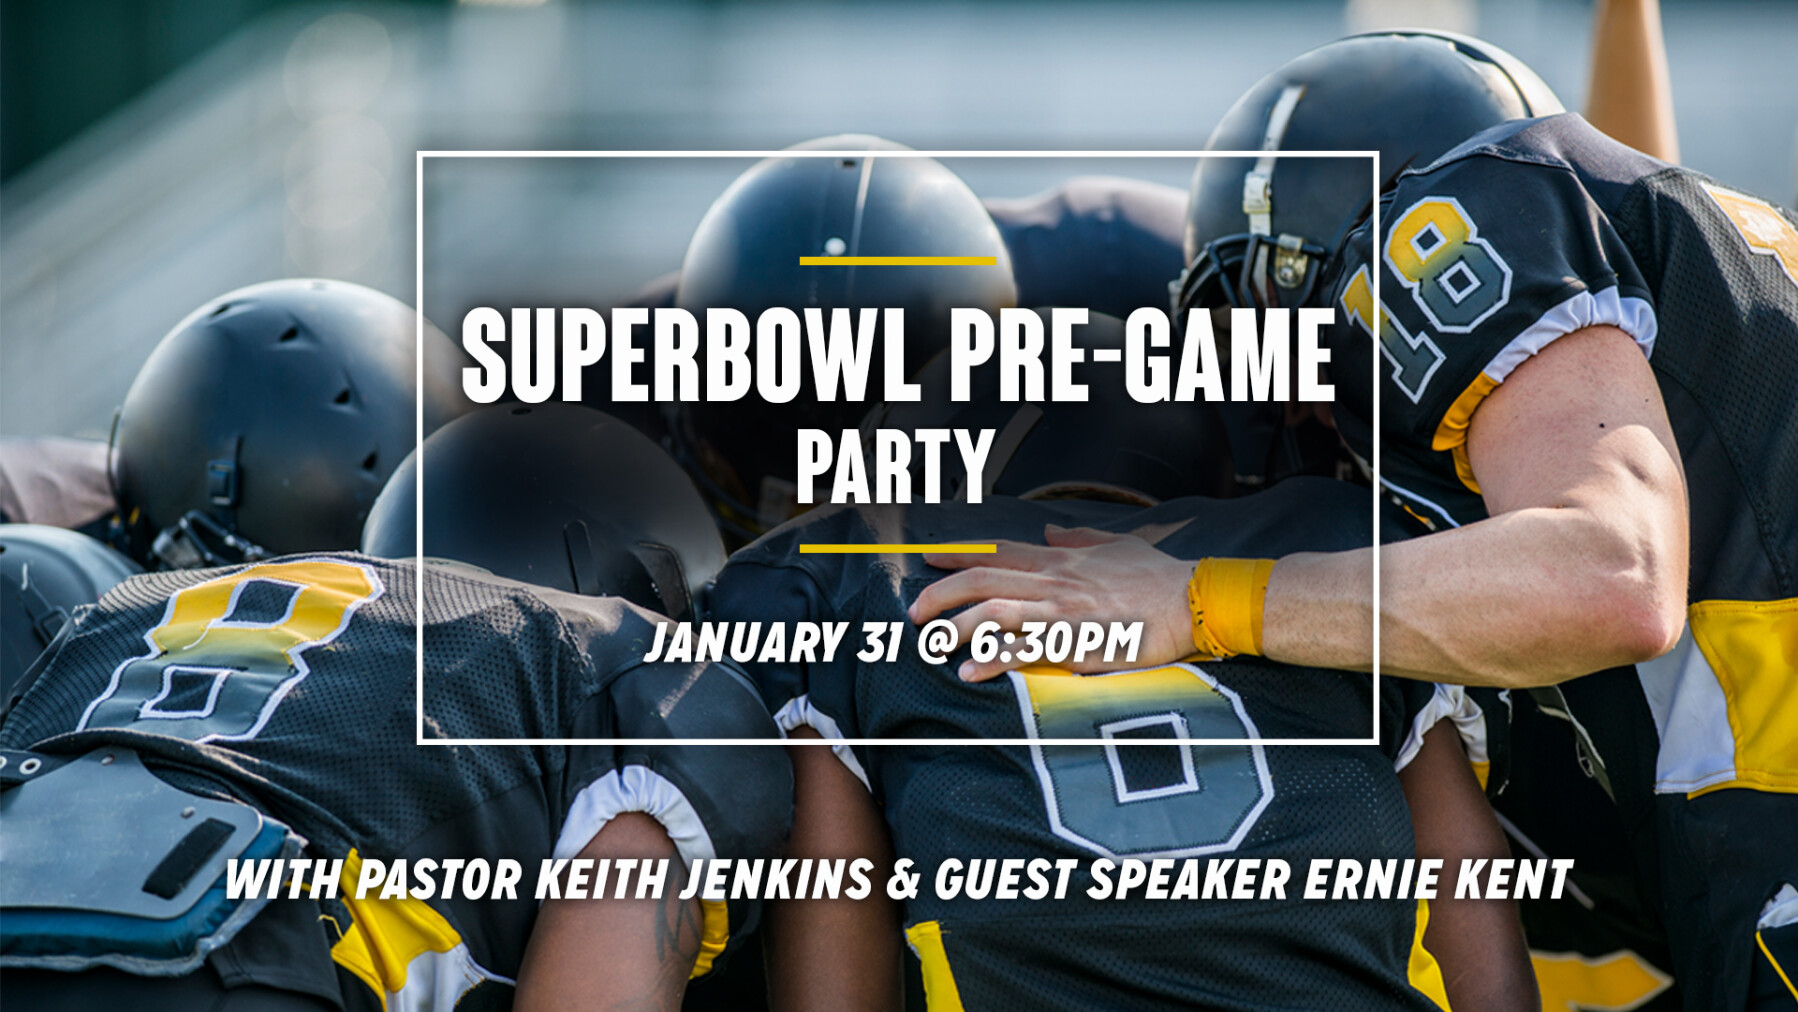 Superbowl Pre-Game Party